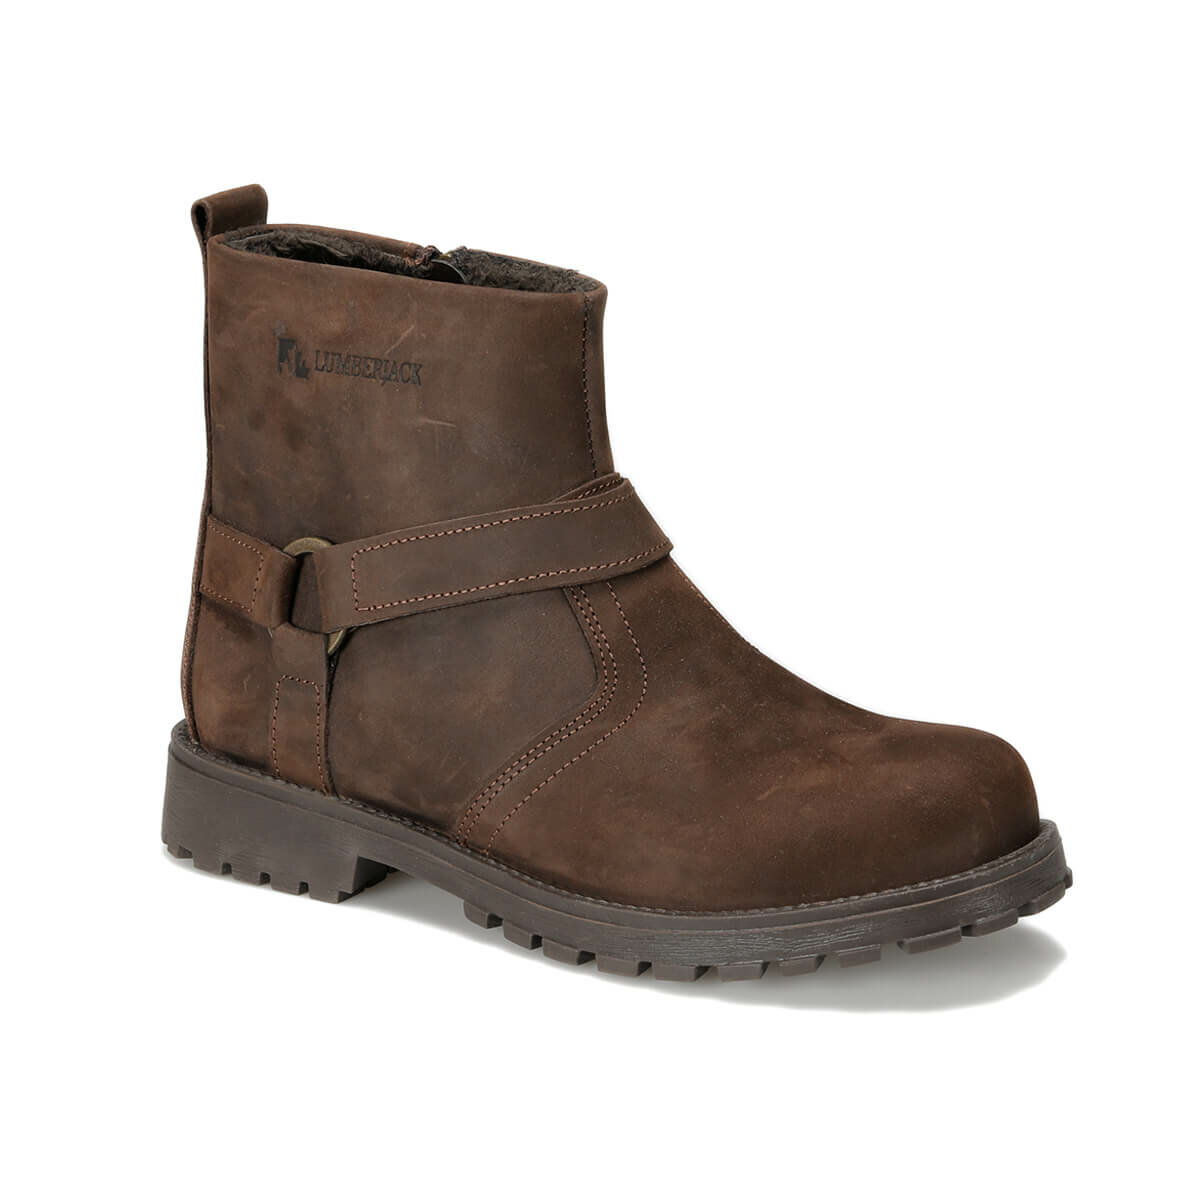 FLO WATSON 9PR Brown Male Child Boots LUMBERJACK